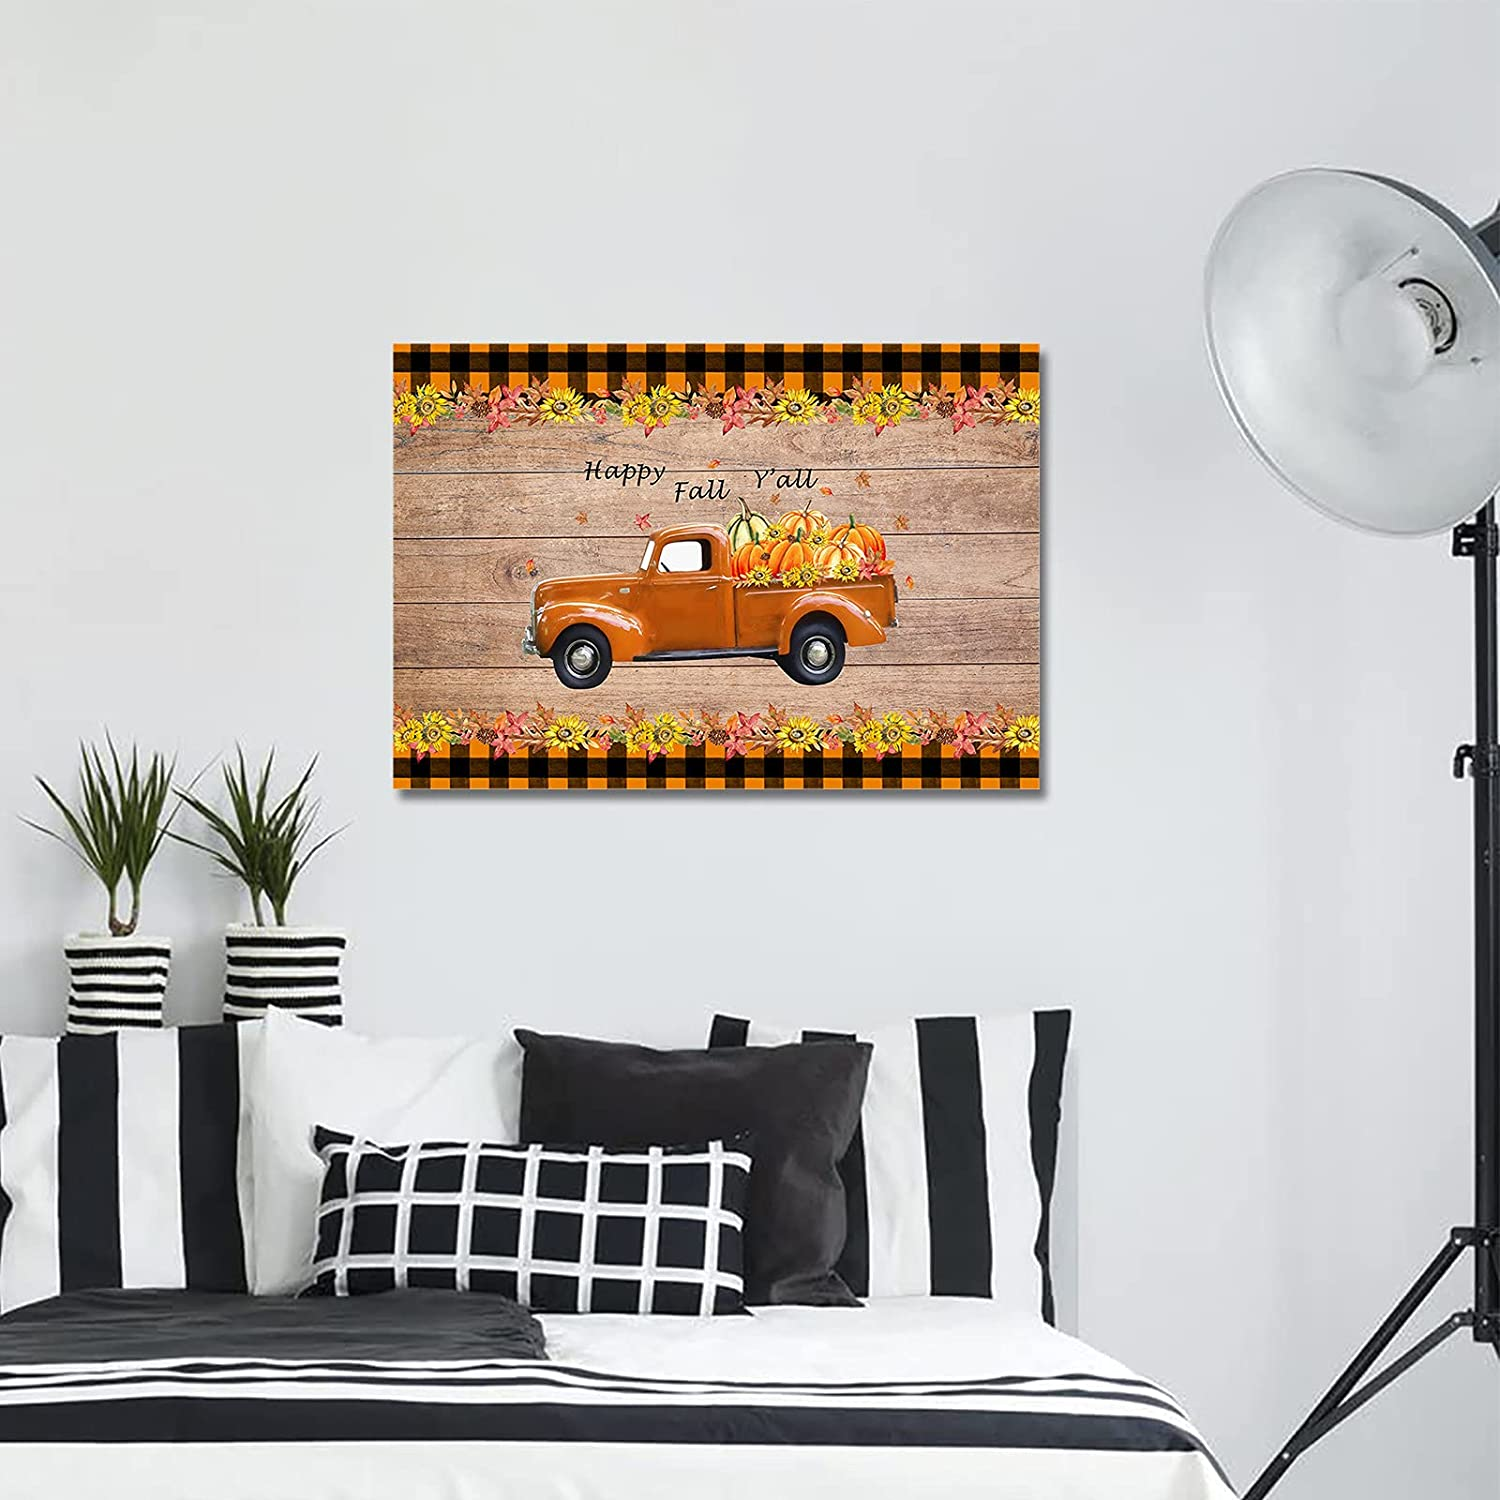 Wall Art Max 67% OFF Canvas Max 55% OFF Painting Artwork for Bedroom Fall an Happy Y'all